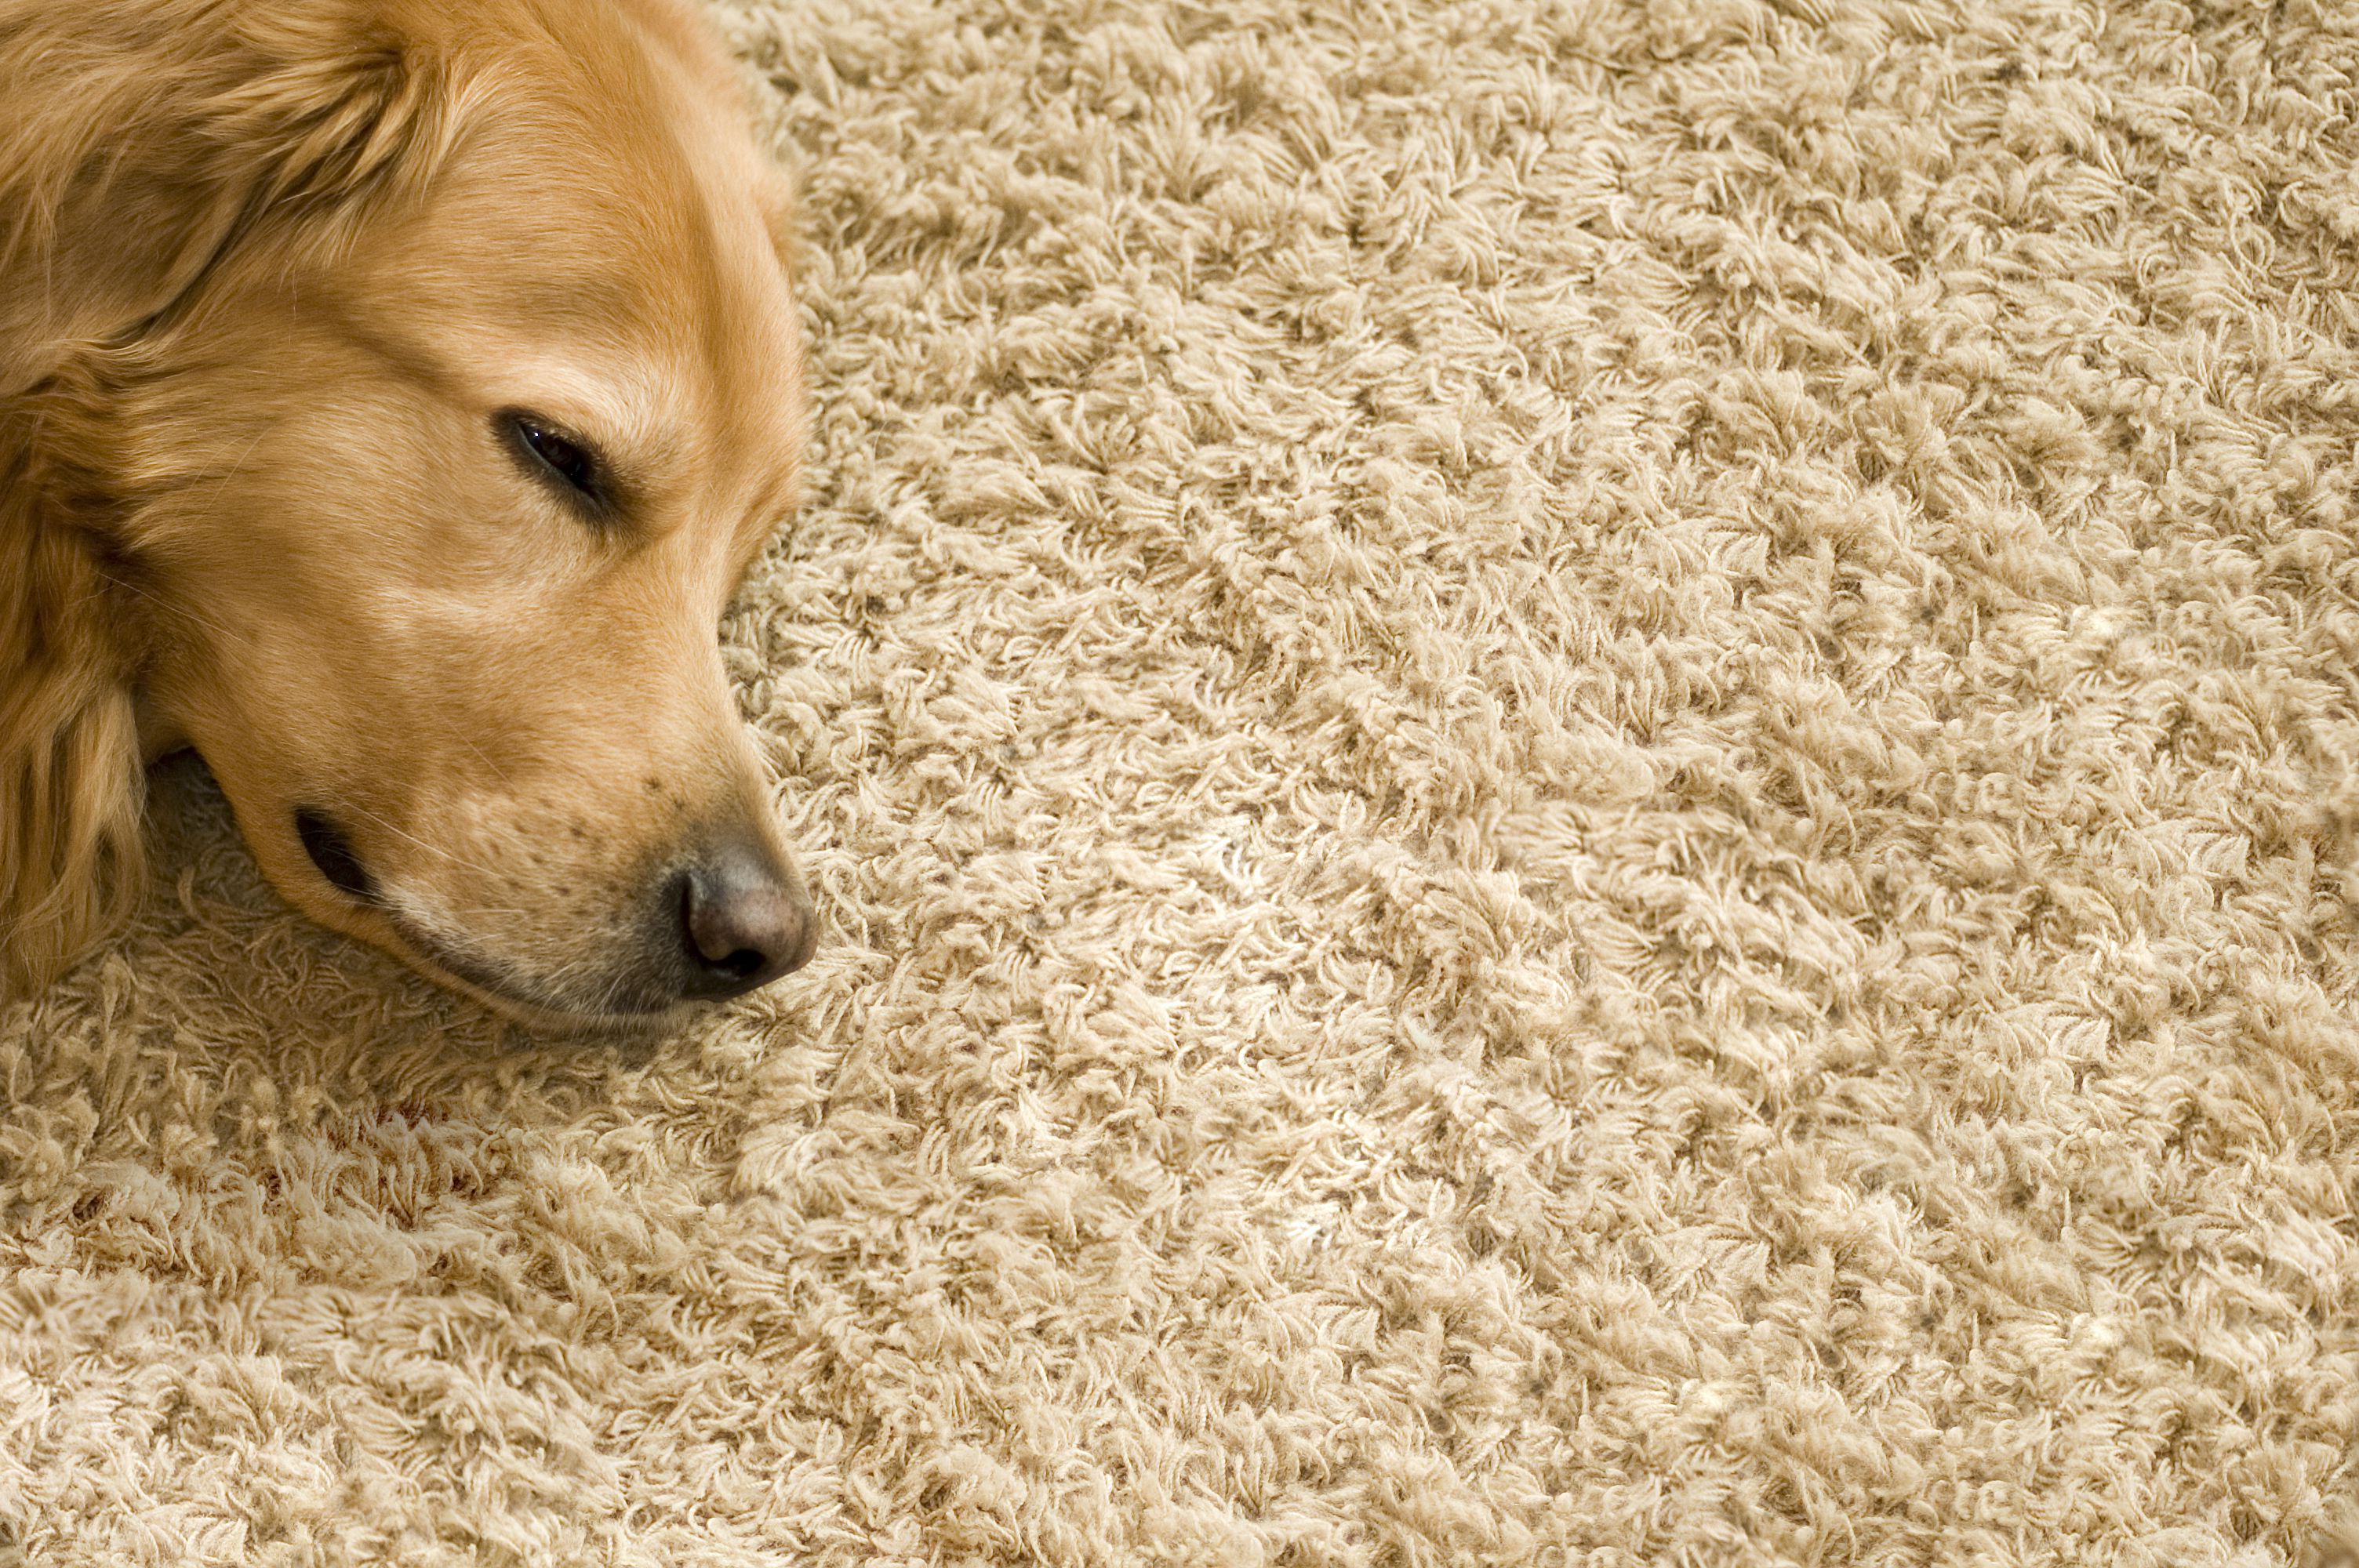 A carpet that you can enjoy for years to come.